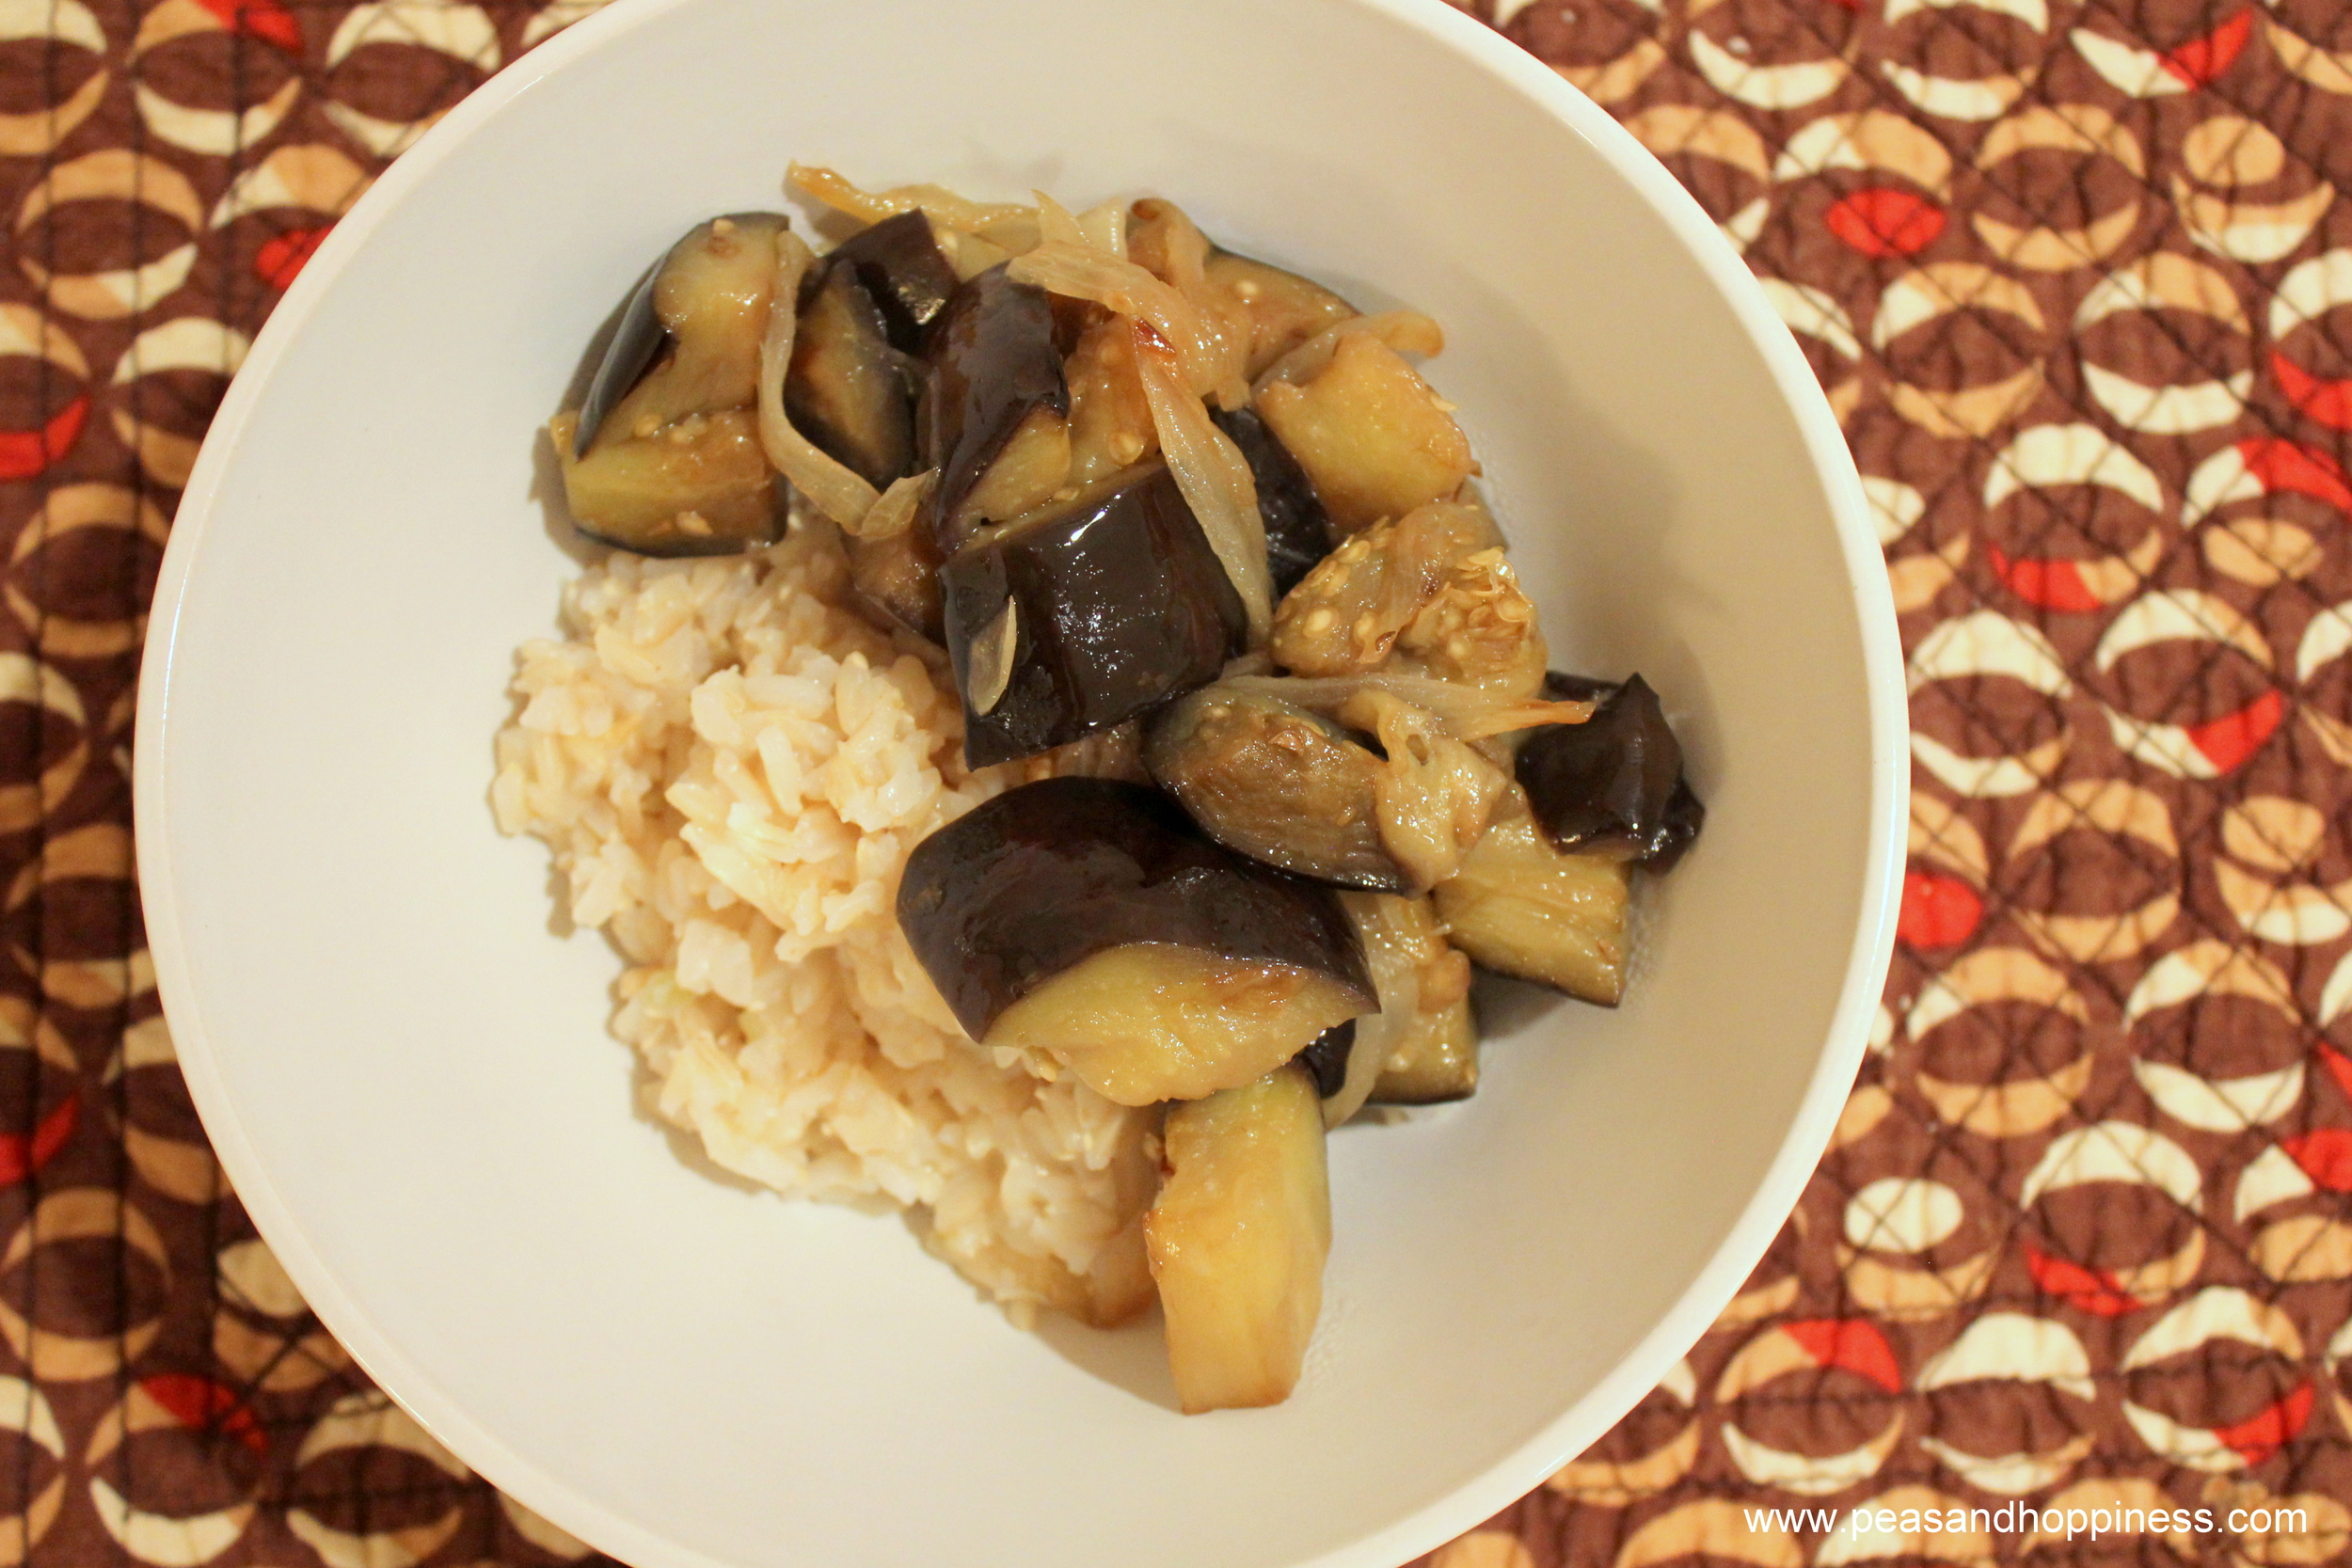 Savory Eggplant over Rice from Peas and Hoppiness - www.peasandhoppiness.com